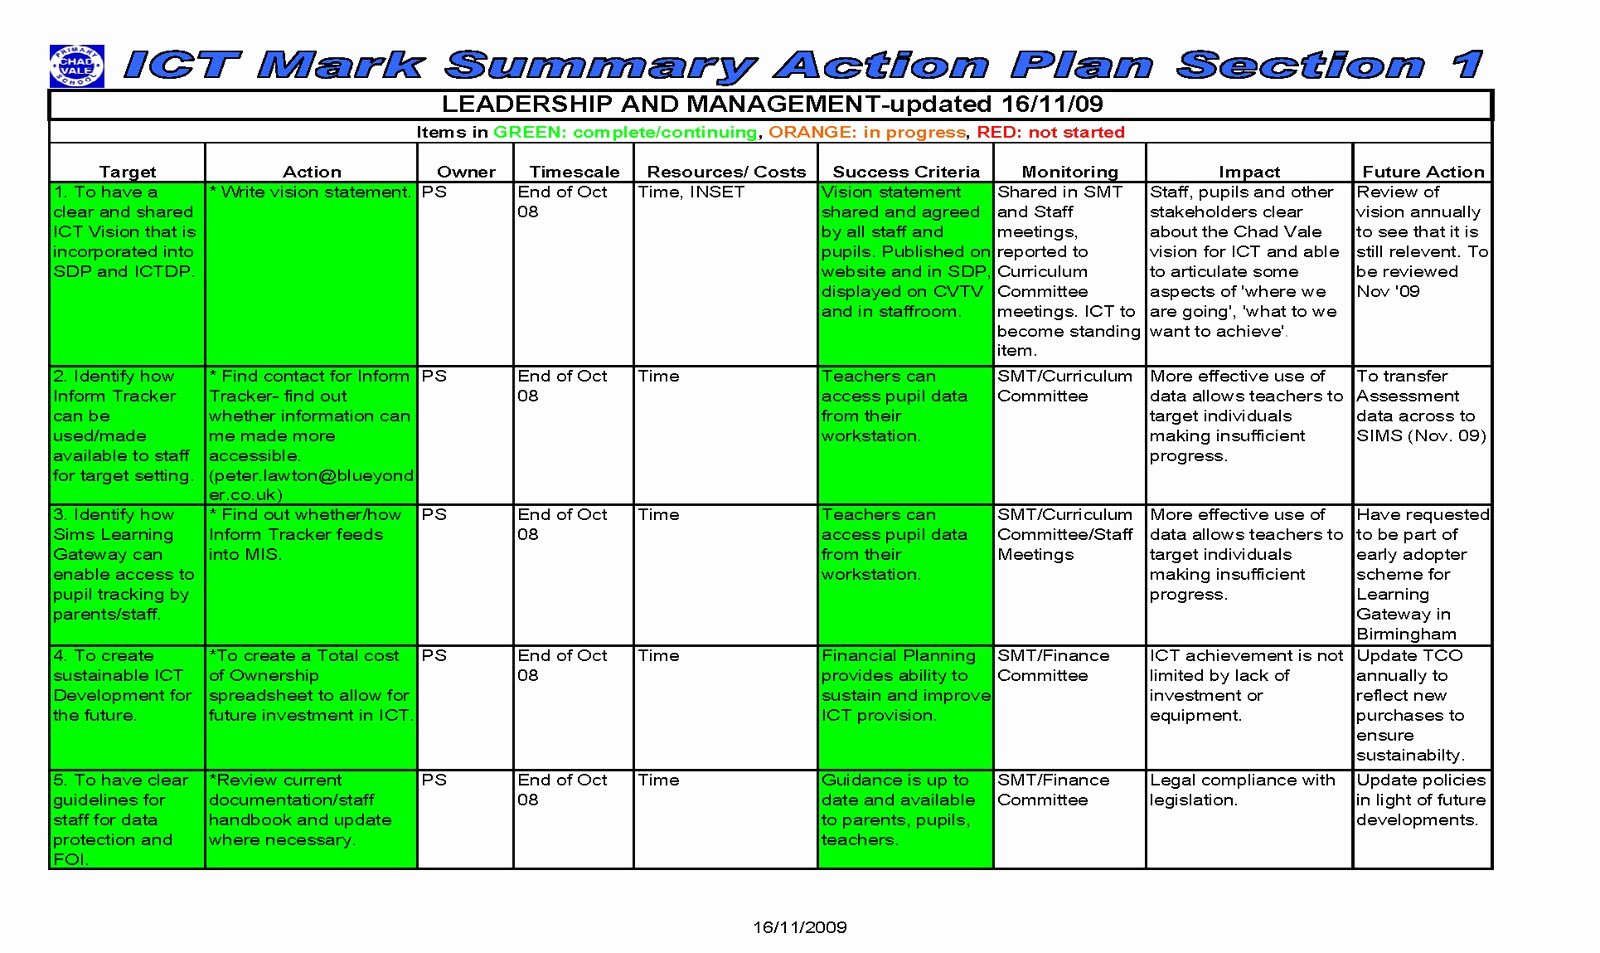 Leadership Action Plan Example Awesome Chad Vale Ict Mark Blog Leadership and Management Action Plan 16 11 09